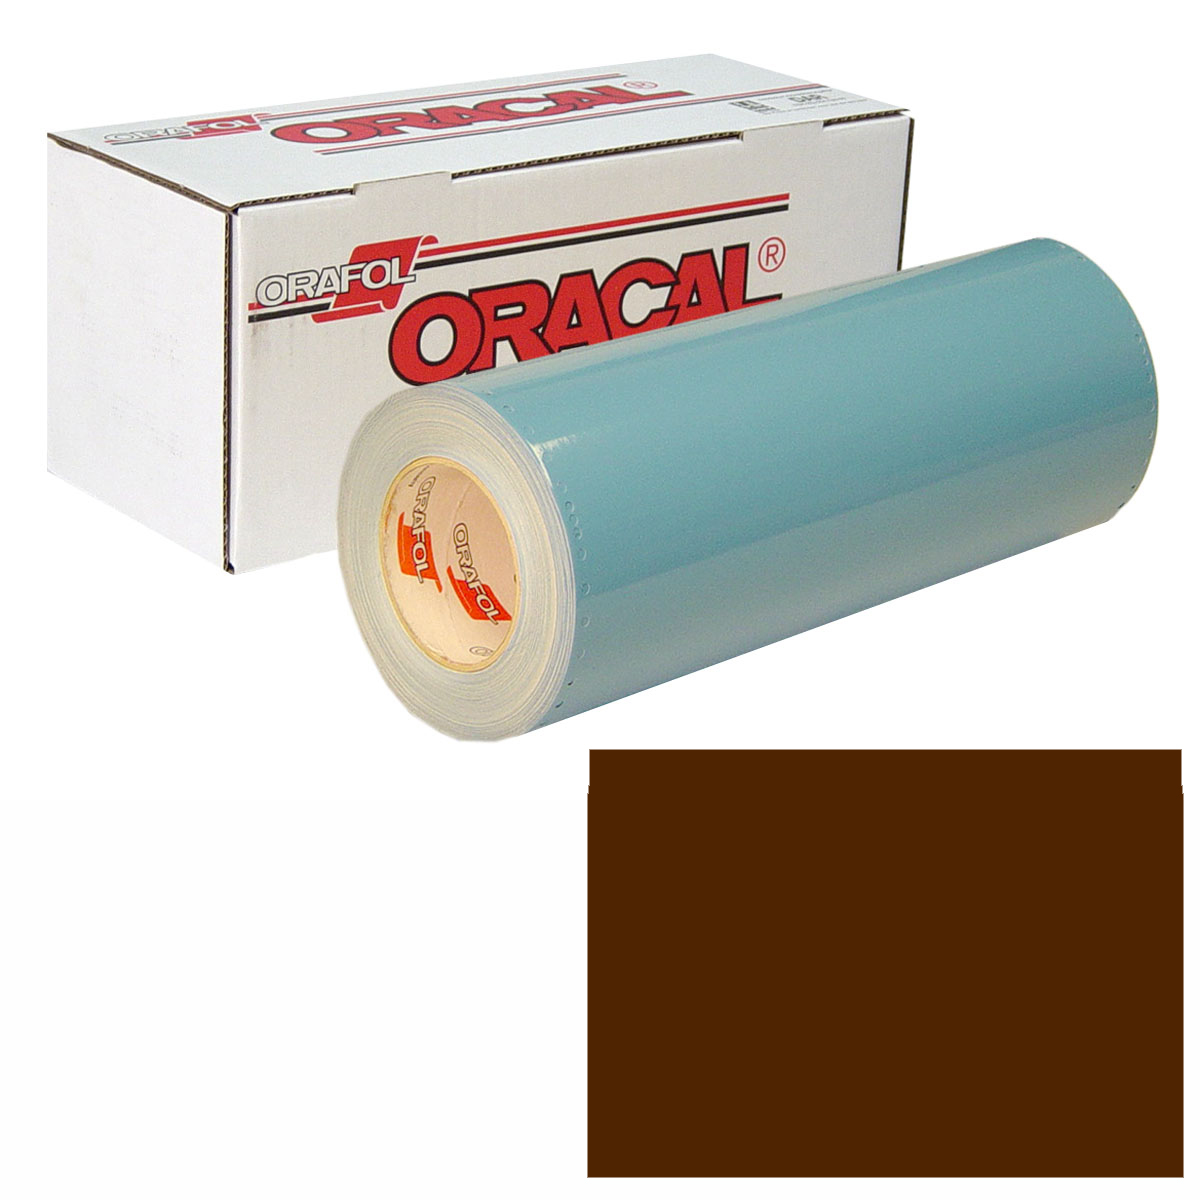 ORACAL 751 15In X 10Yd 080 Brown